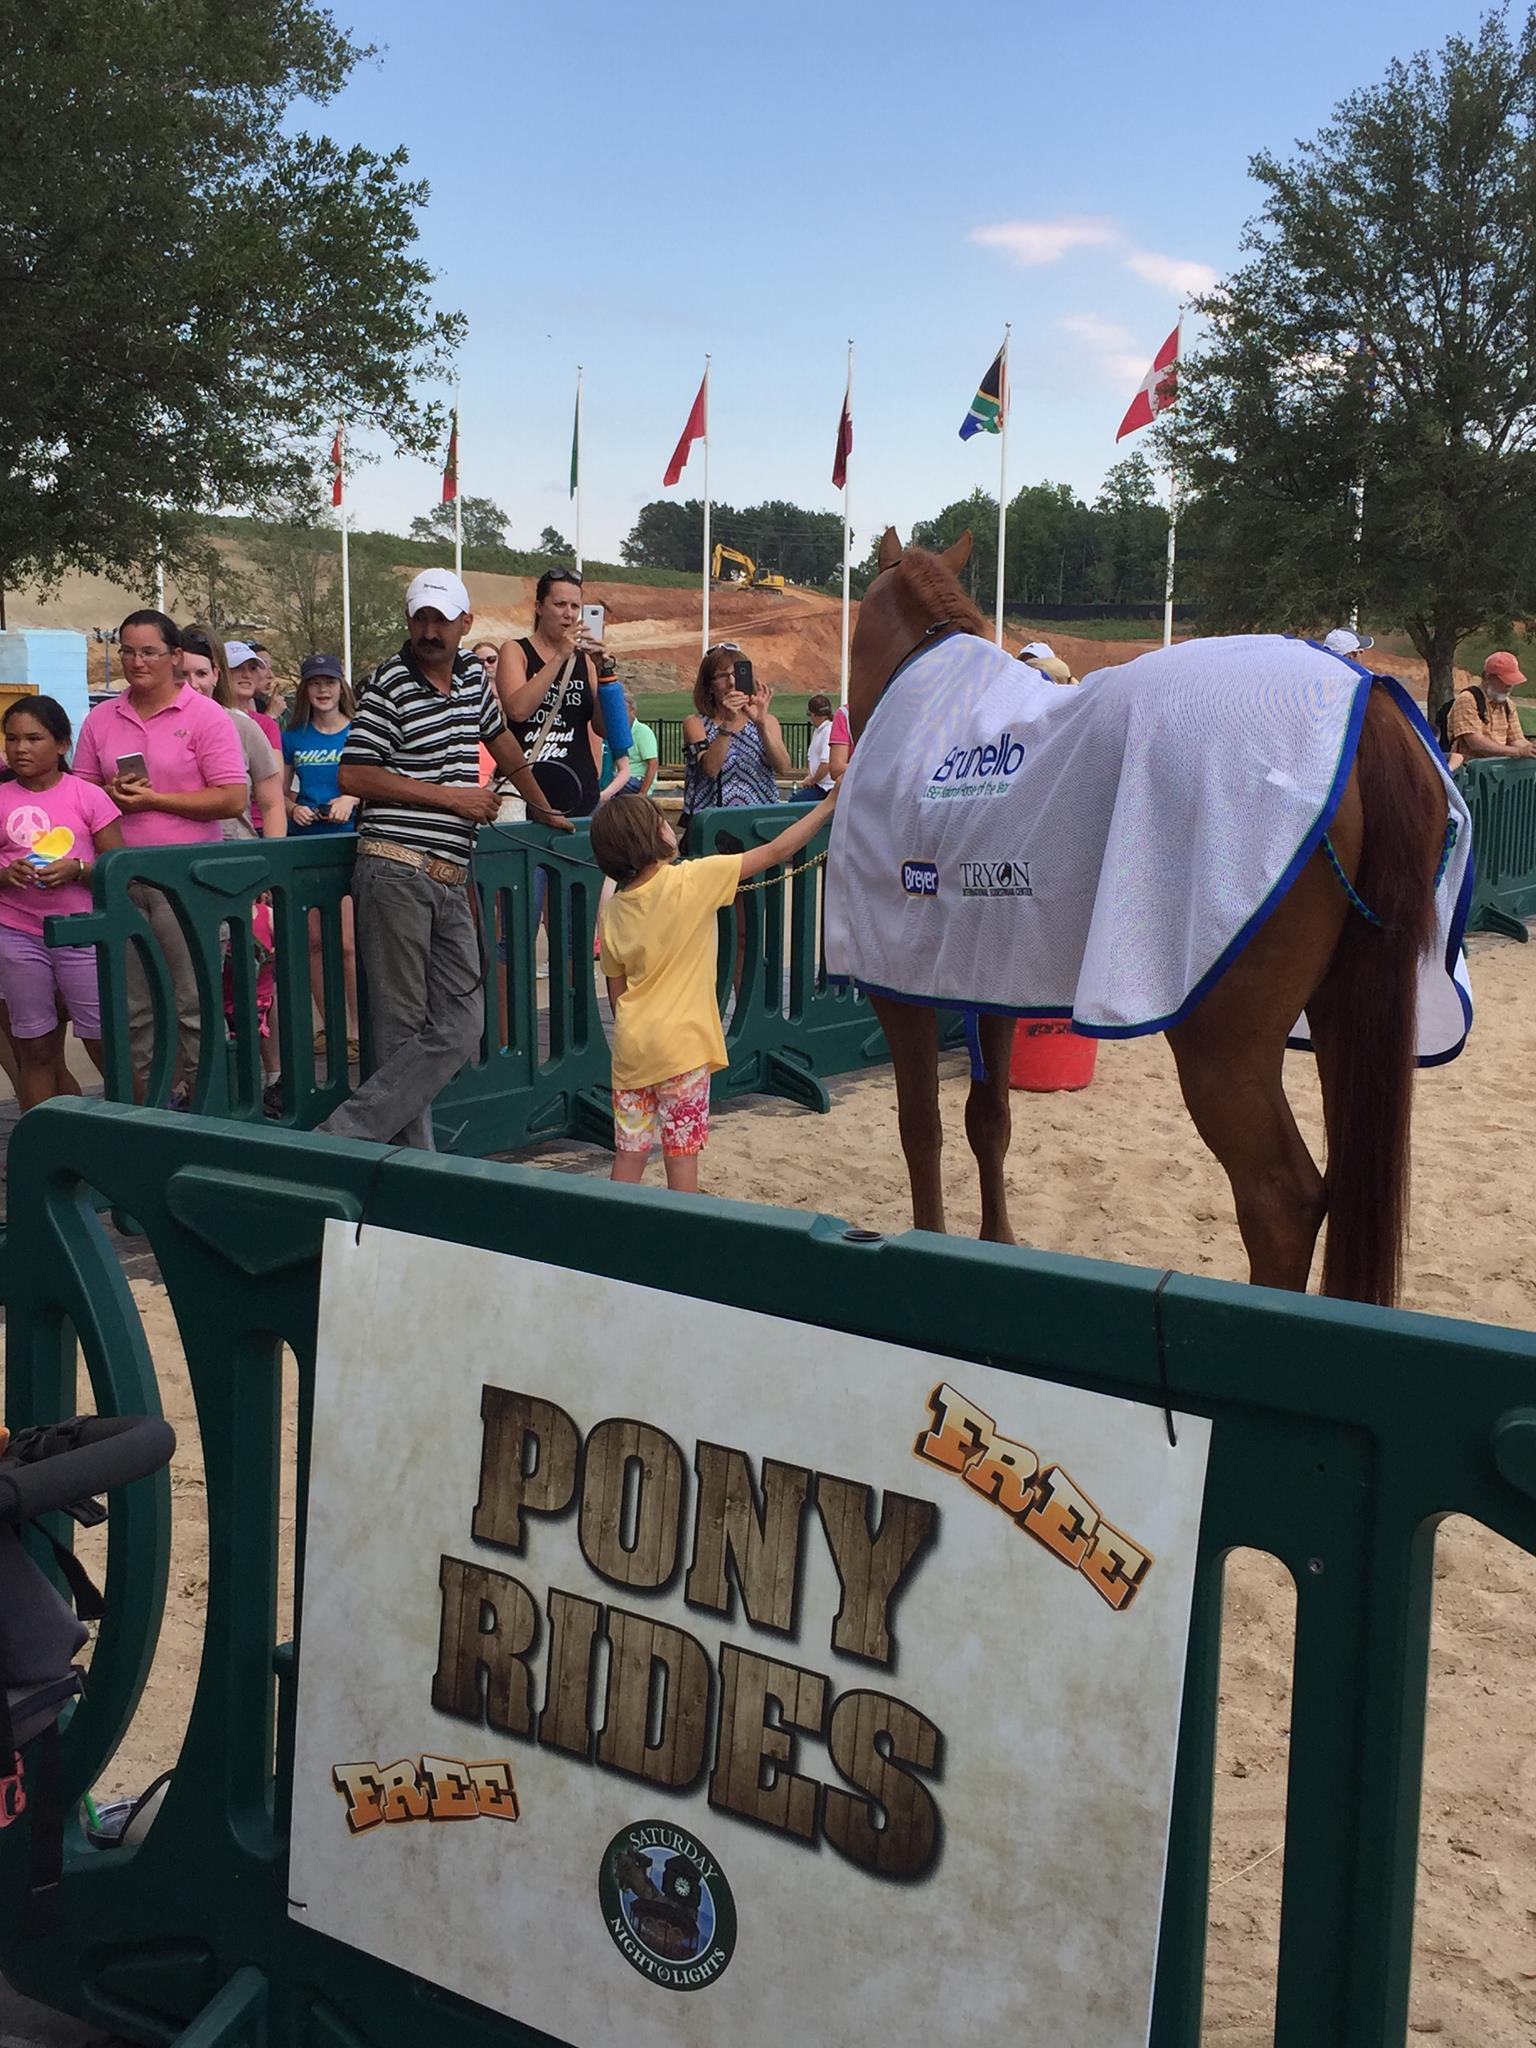 From Derby Champion to Pony Ride Pen!